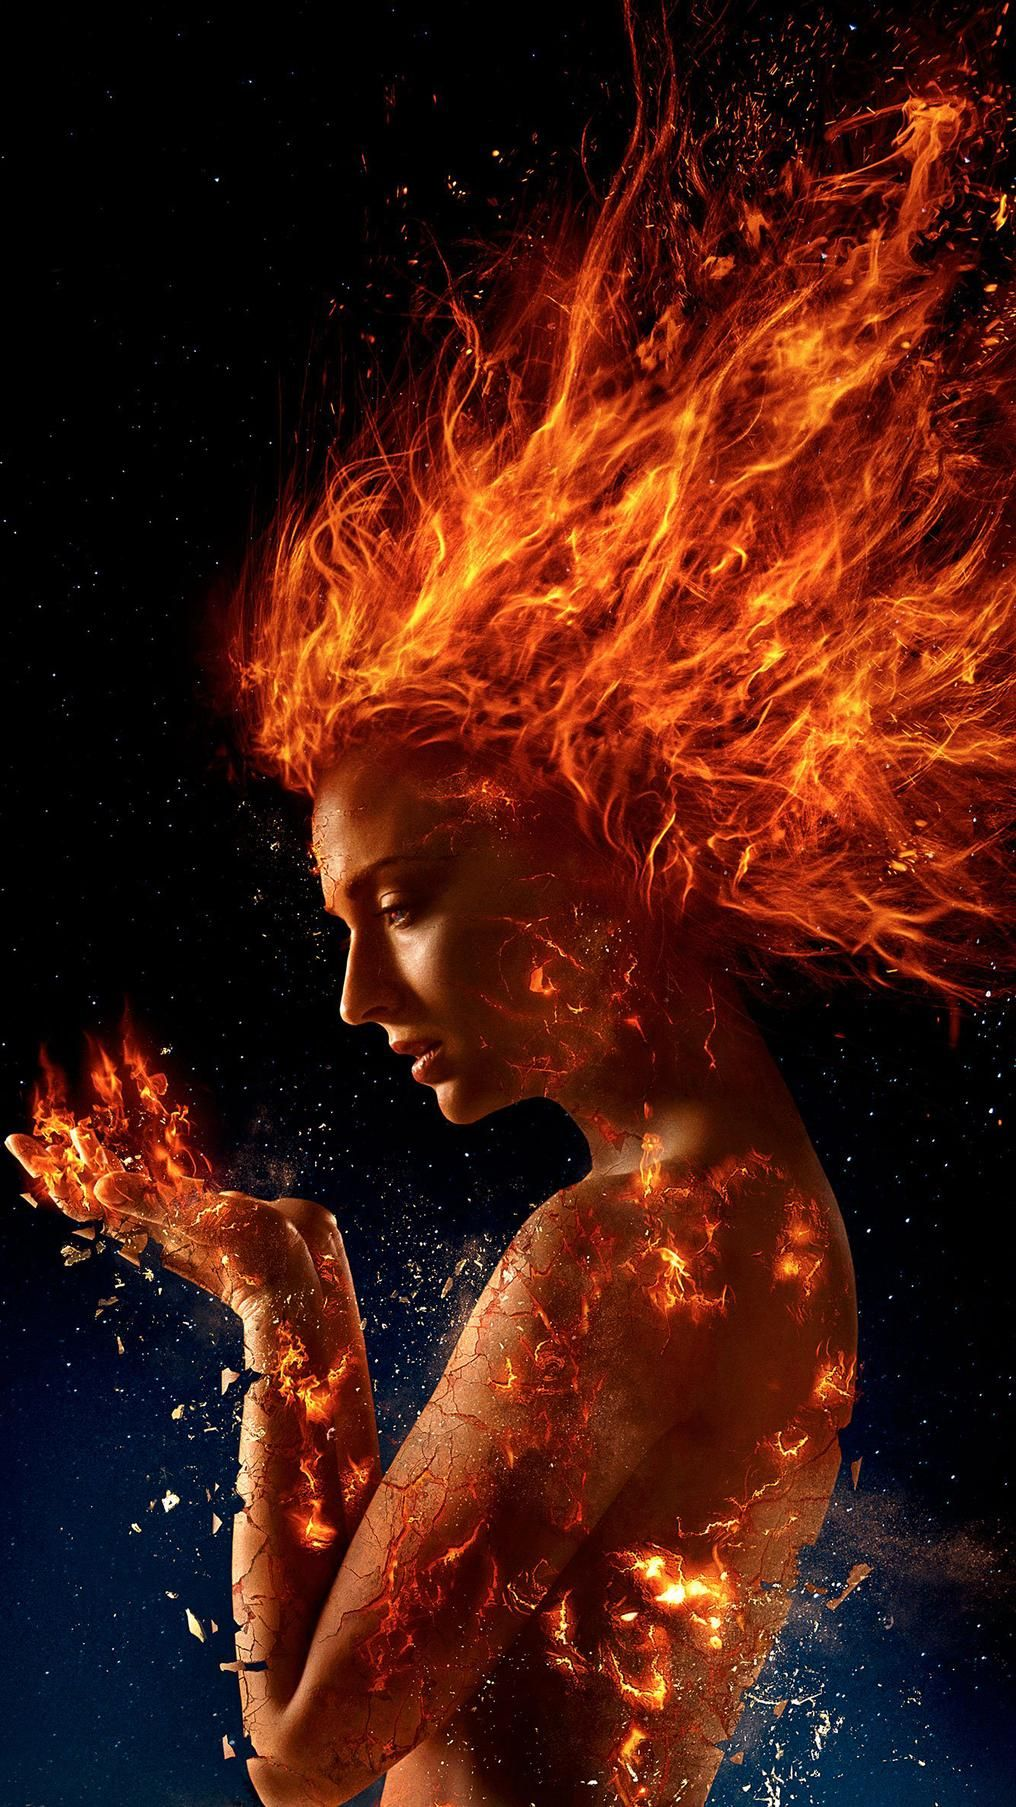 Dark Phoenix 2019 Phone Wallpaper Moviemania Dark Phoenix Jean Grey Phoenix Phoenix Wallpaper